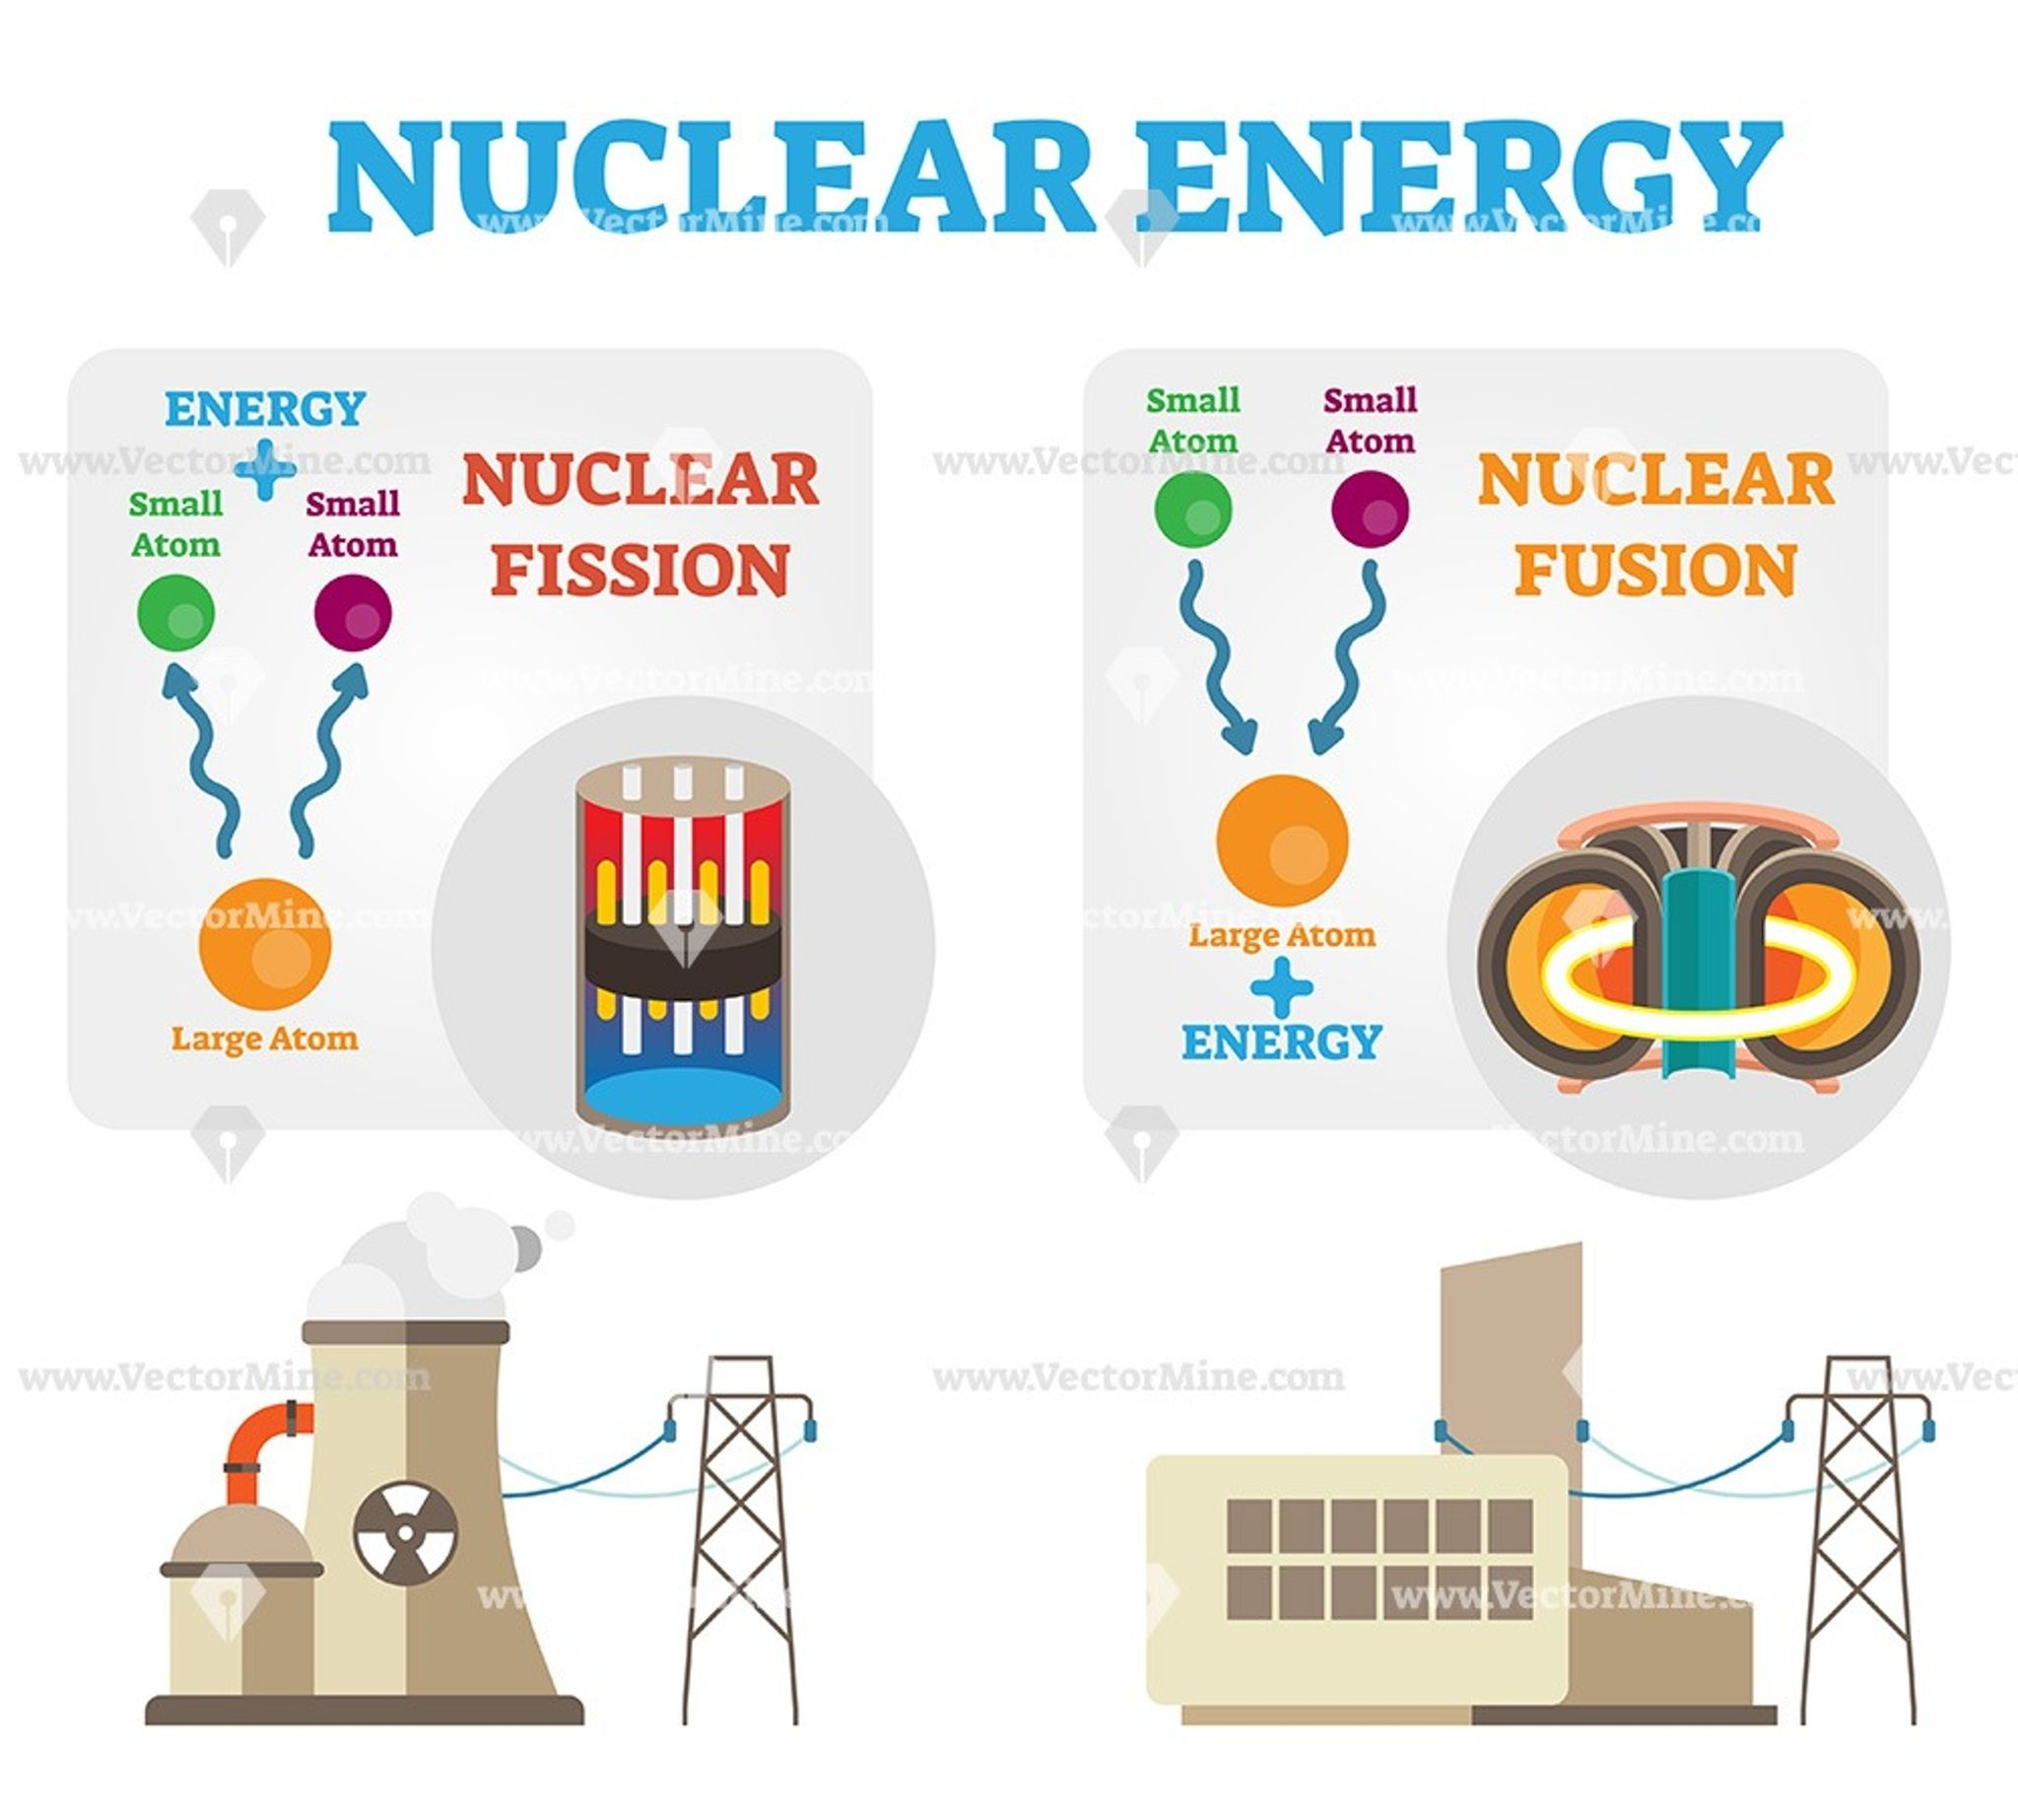 Nuclear Energy Fission And Fusion Concept Diagram